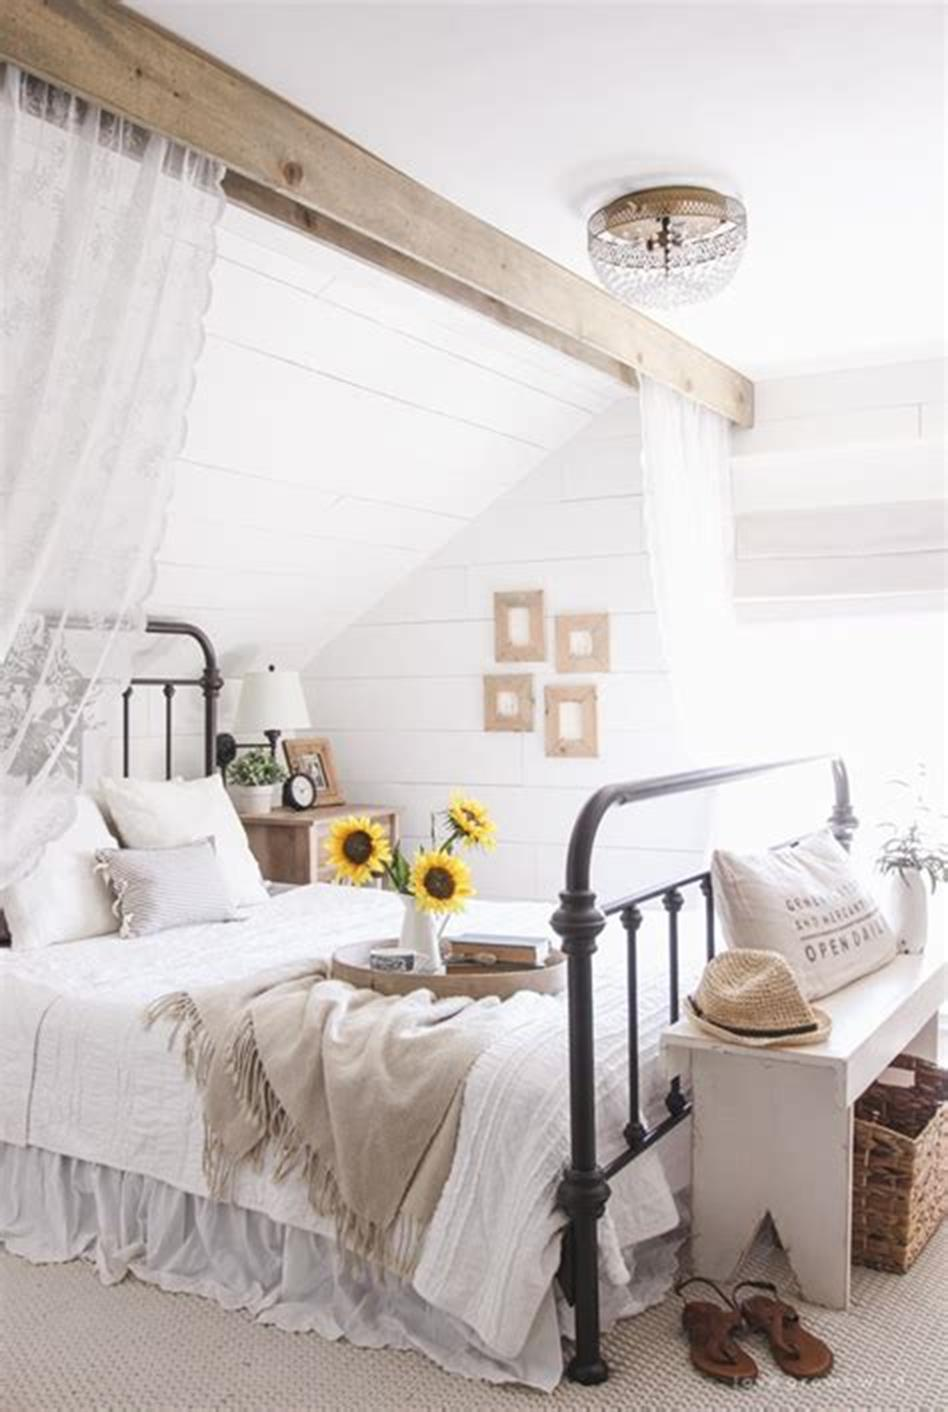 48 Stunning Farmhouse Master Bedroom Design Ideas 2019 2